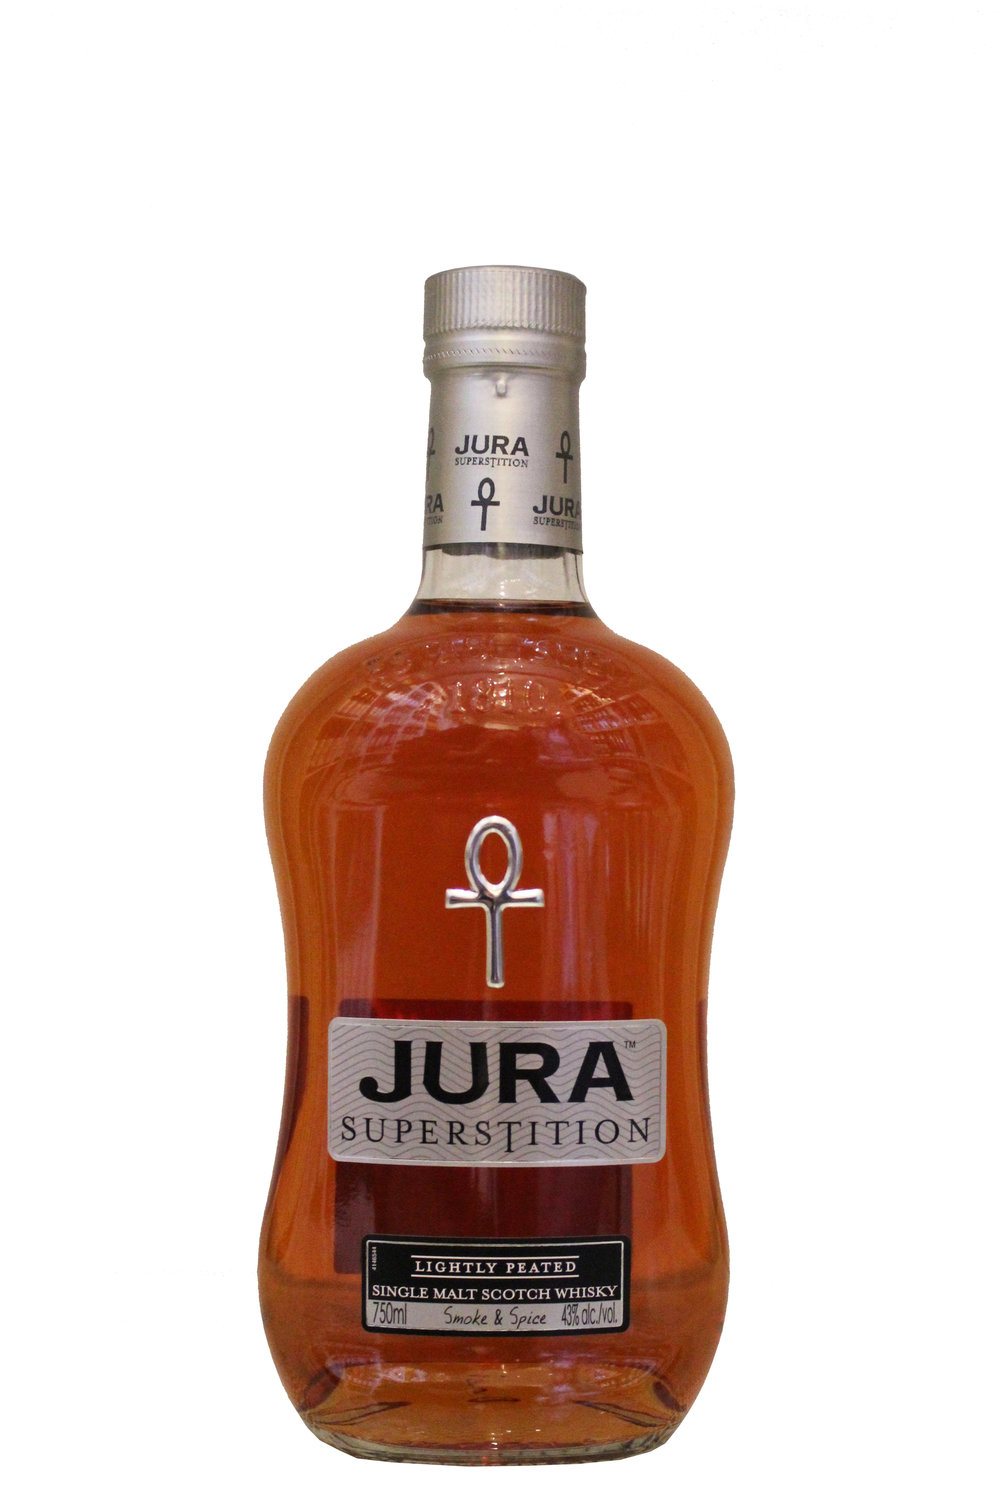 Single Malt Scotch Whiskey Jura Superstition, Scotland